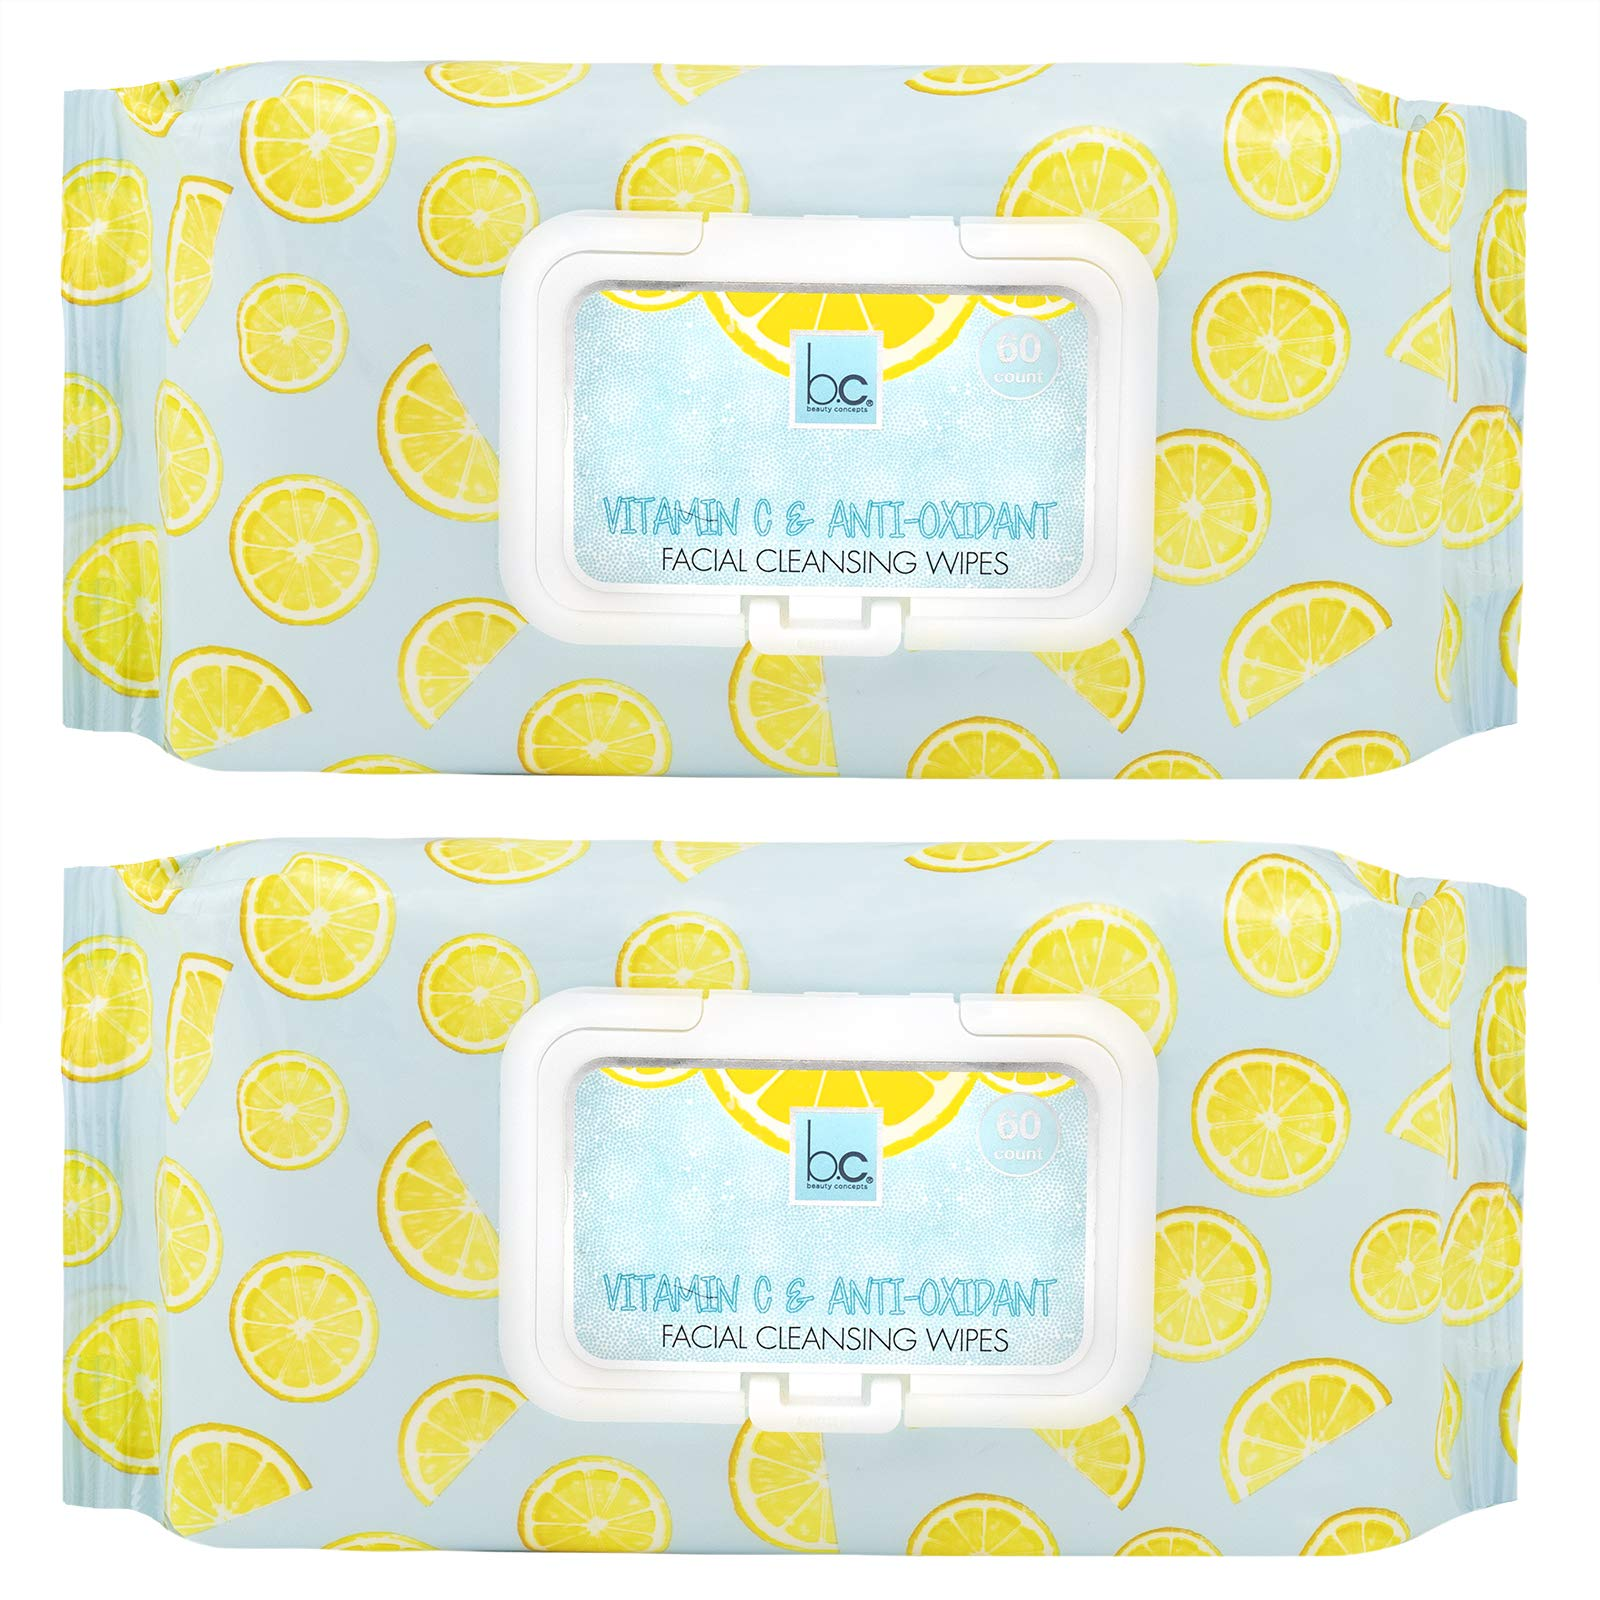 Beauty Concepts - 2 Pack (60 Count Each) Citrus Facial Cleansing Wipes with Vitamin C